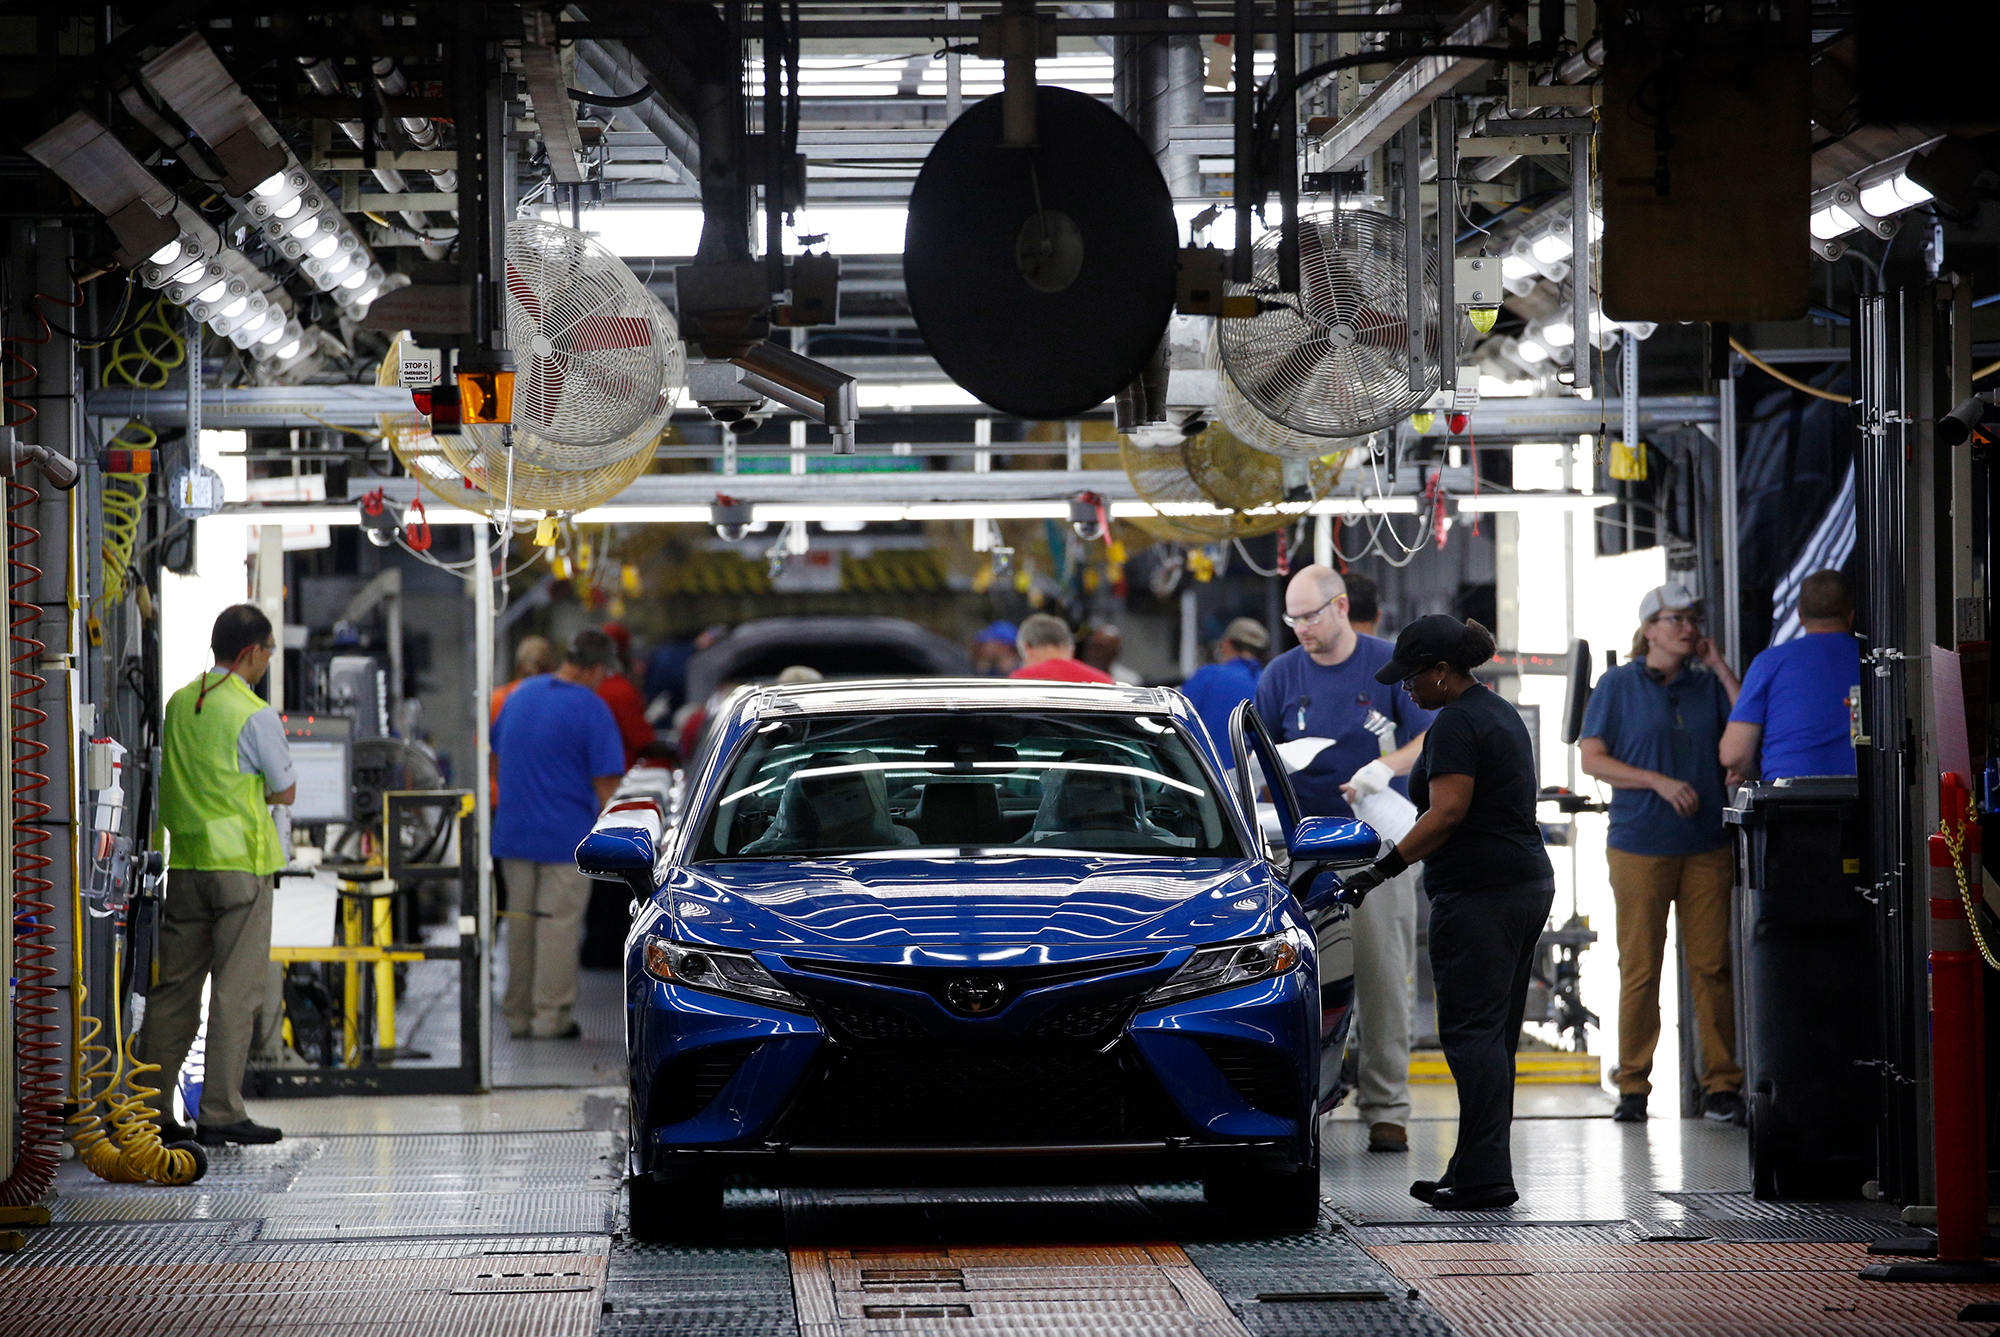 Workers inspect Camry vehicles at the Toyota plant in Georgetown, Kentucky, on Thursday, August 29, 2019.